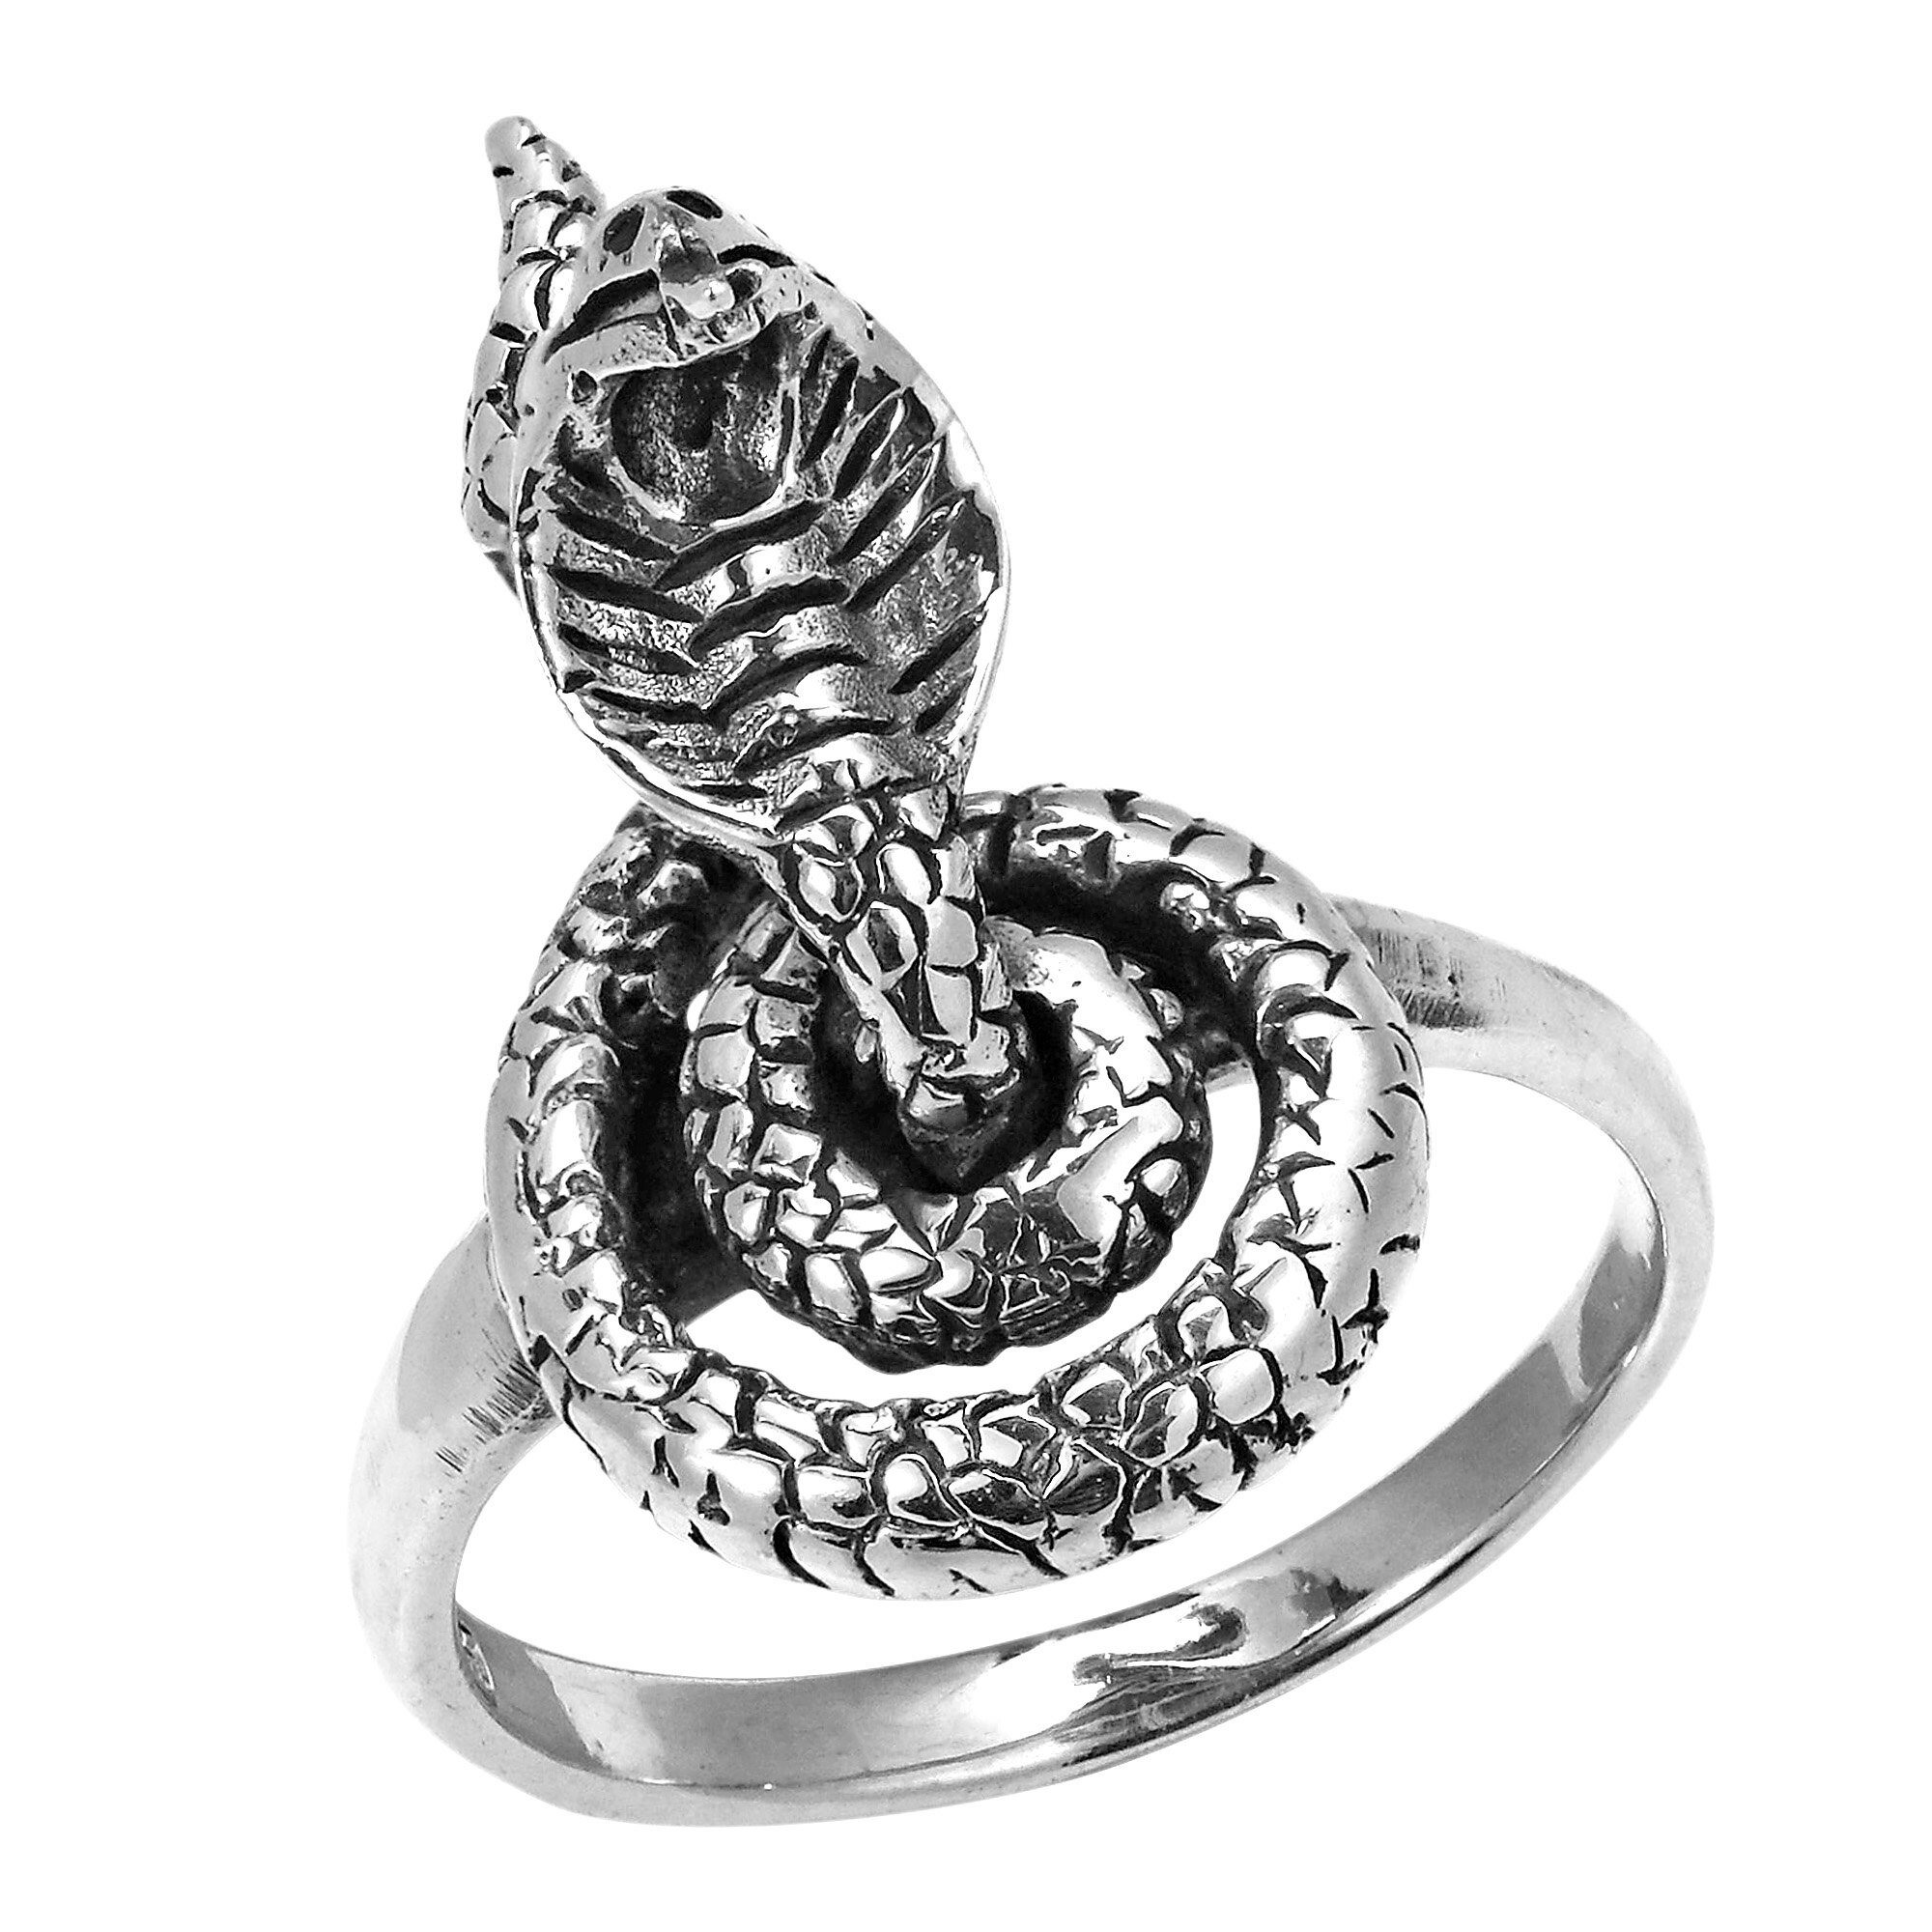 Fatal King Cobra Snake Movable Head Sterling Silver Ring (Thailand) 2